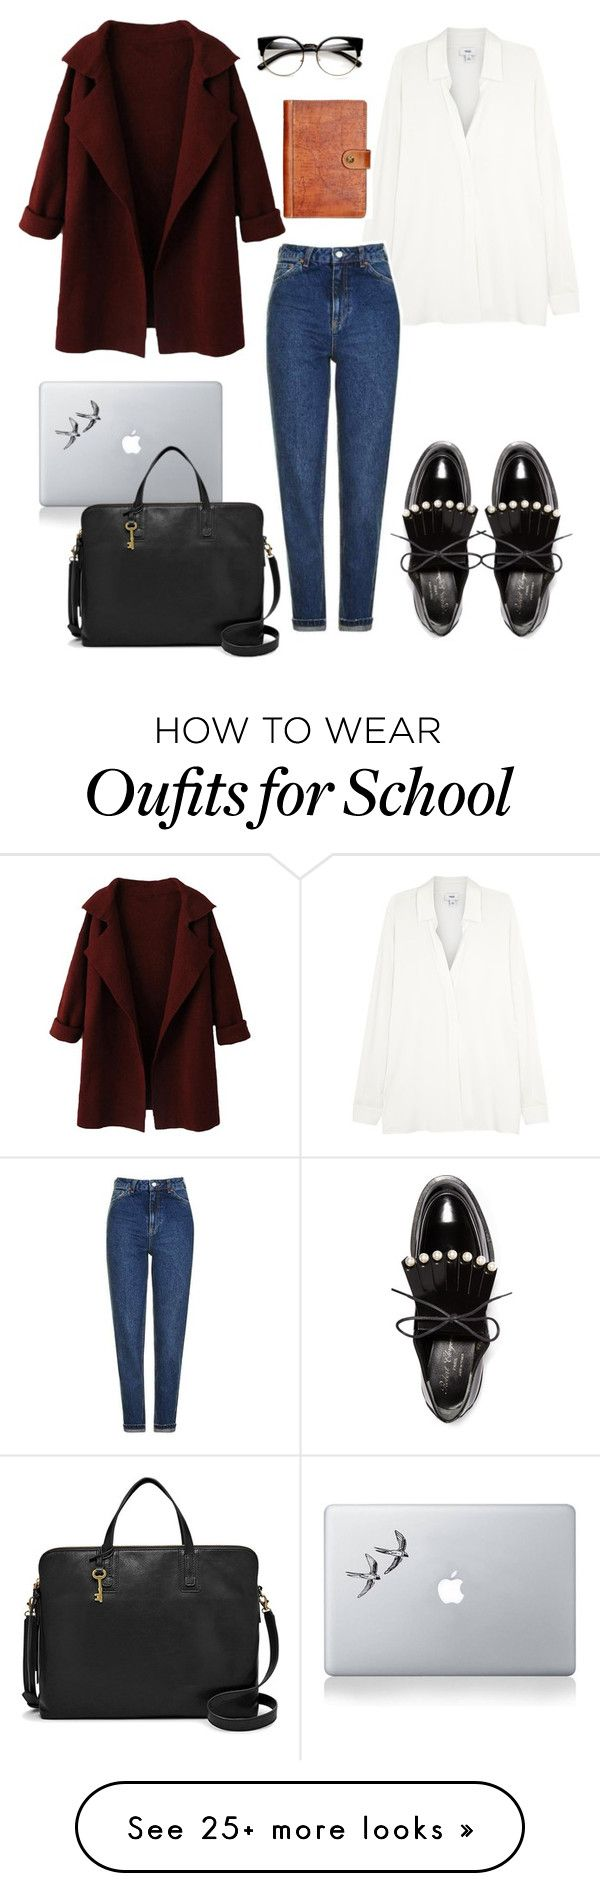 """""""School"""" by martariri on Polyvore featuring Vince, Topshop, Robert Clergerie, Patricia Nash, Vinyl Revolution and FOSSIL"""